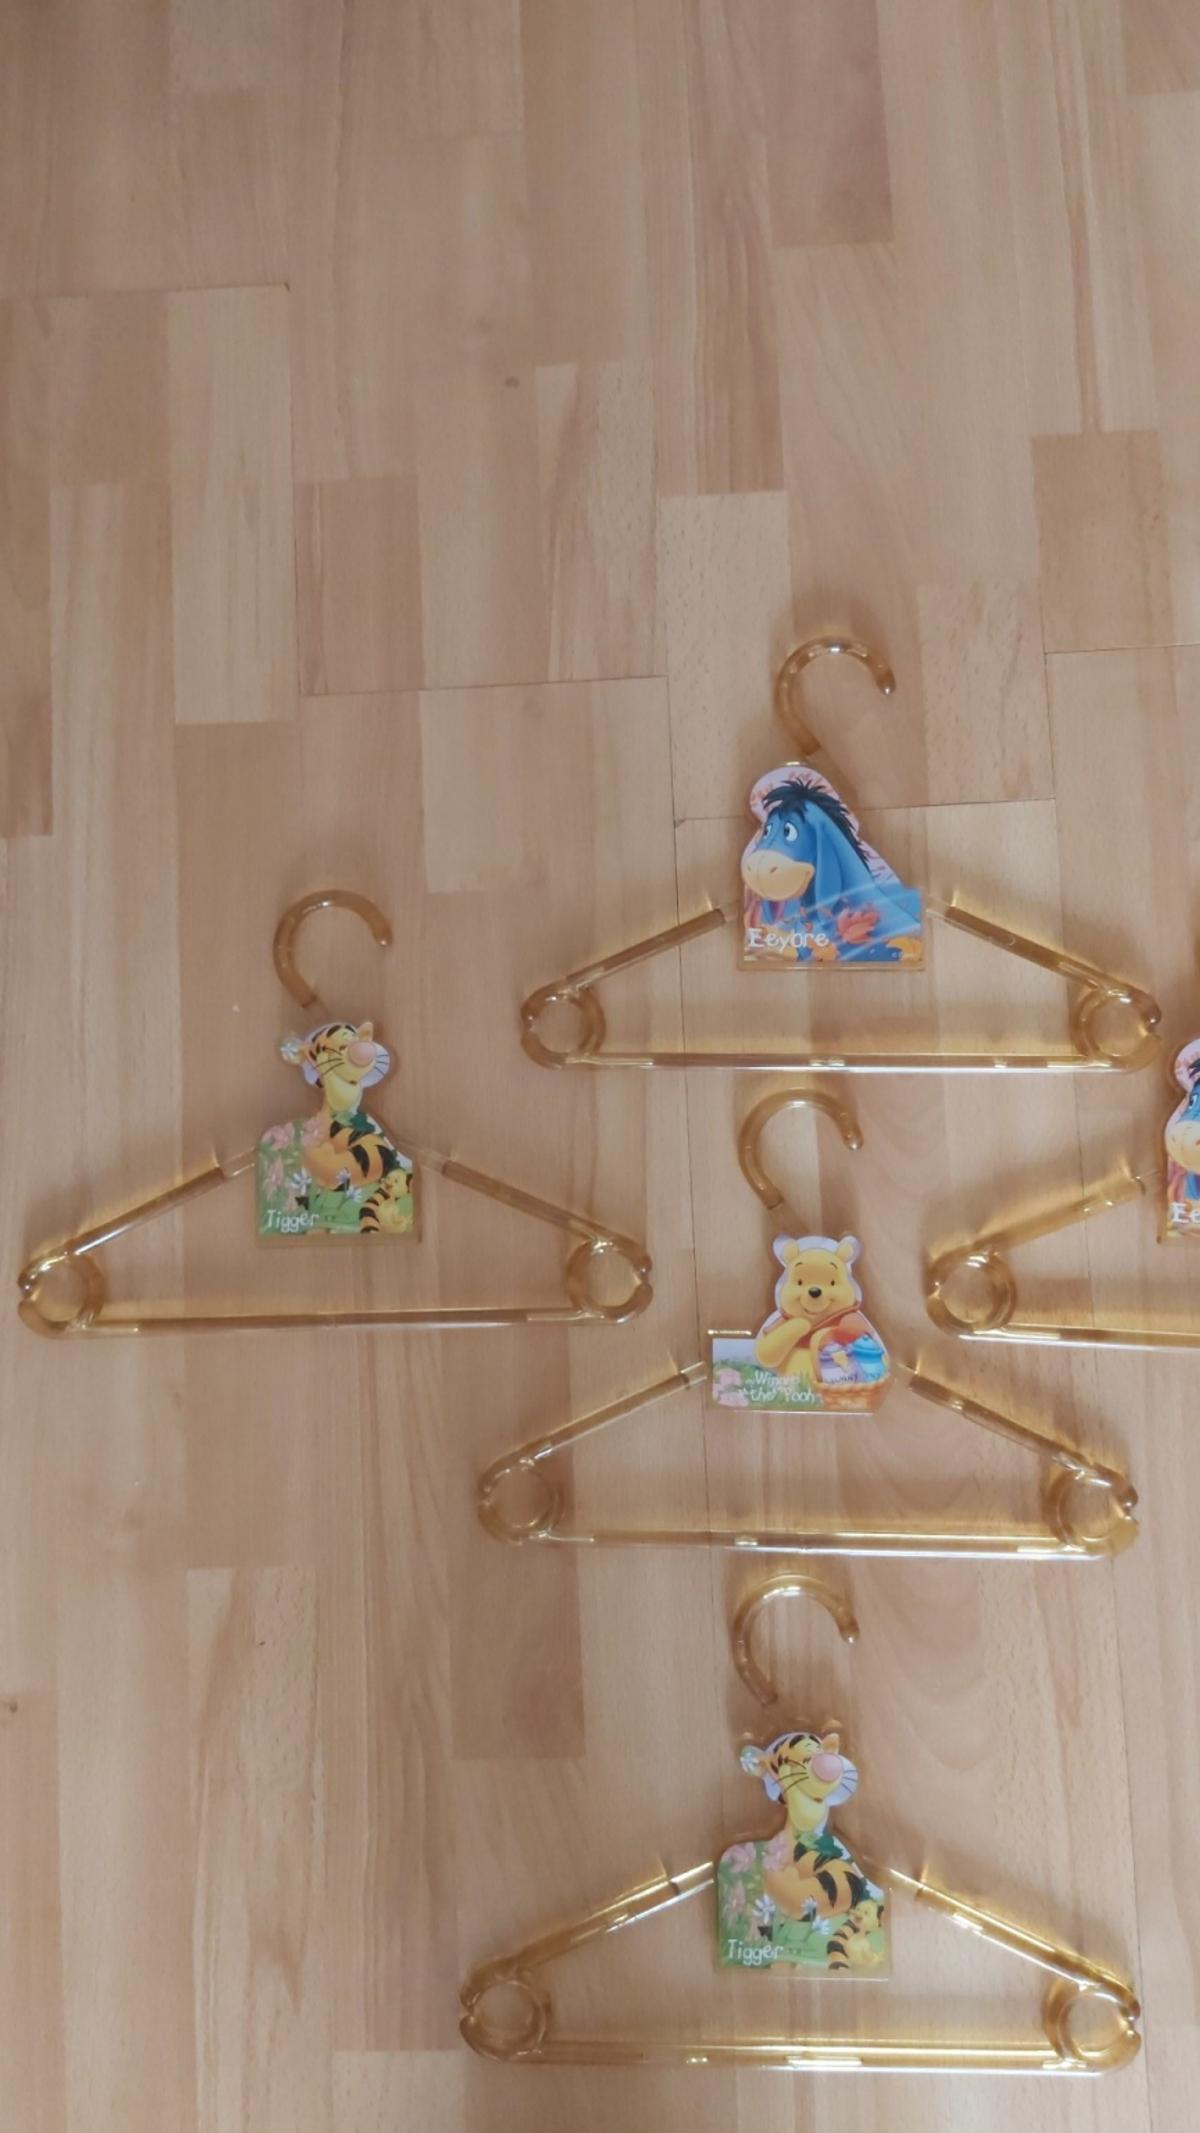 5 Disney Sturdy Plastic Coat Hangers(Collection Only)